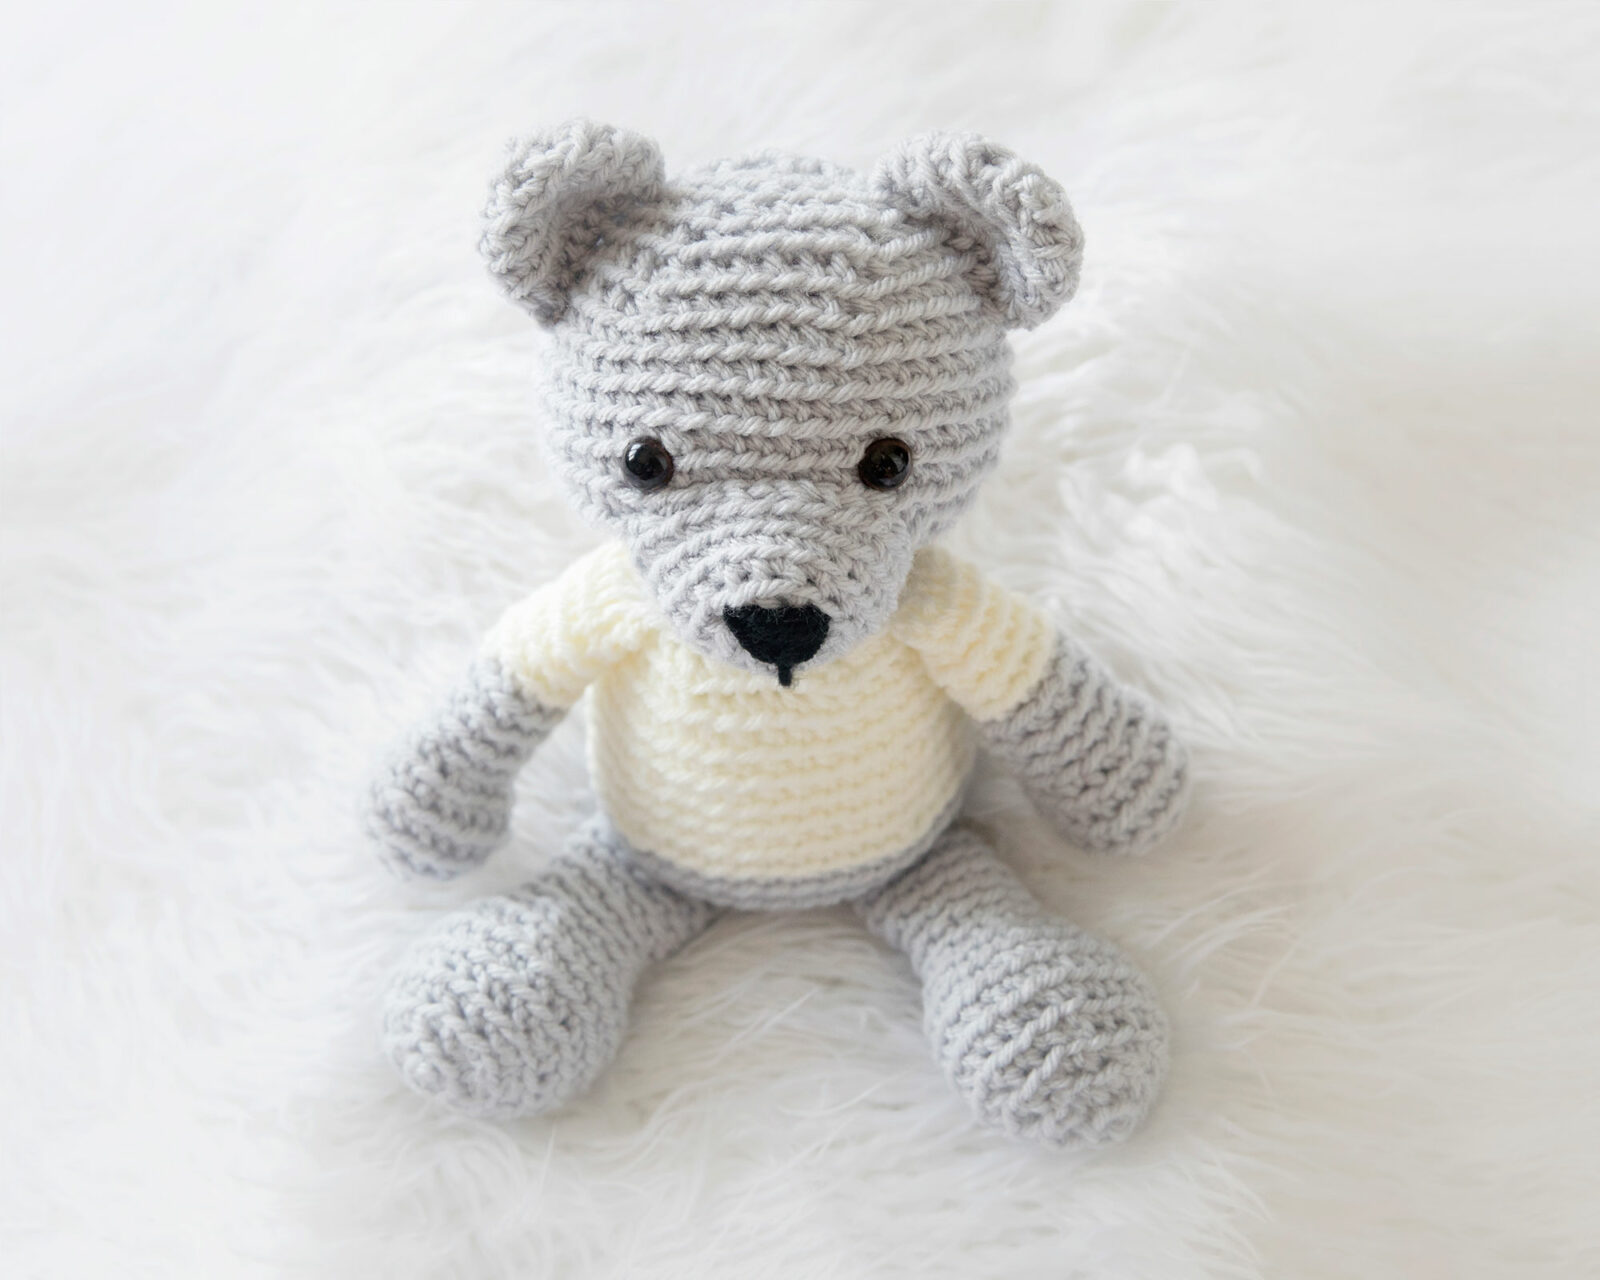 Happyamigurumi: Lucas the Teddy Bear - Crochet Toy Pattern | 1600x2000